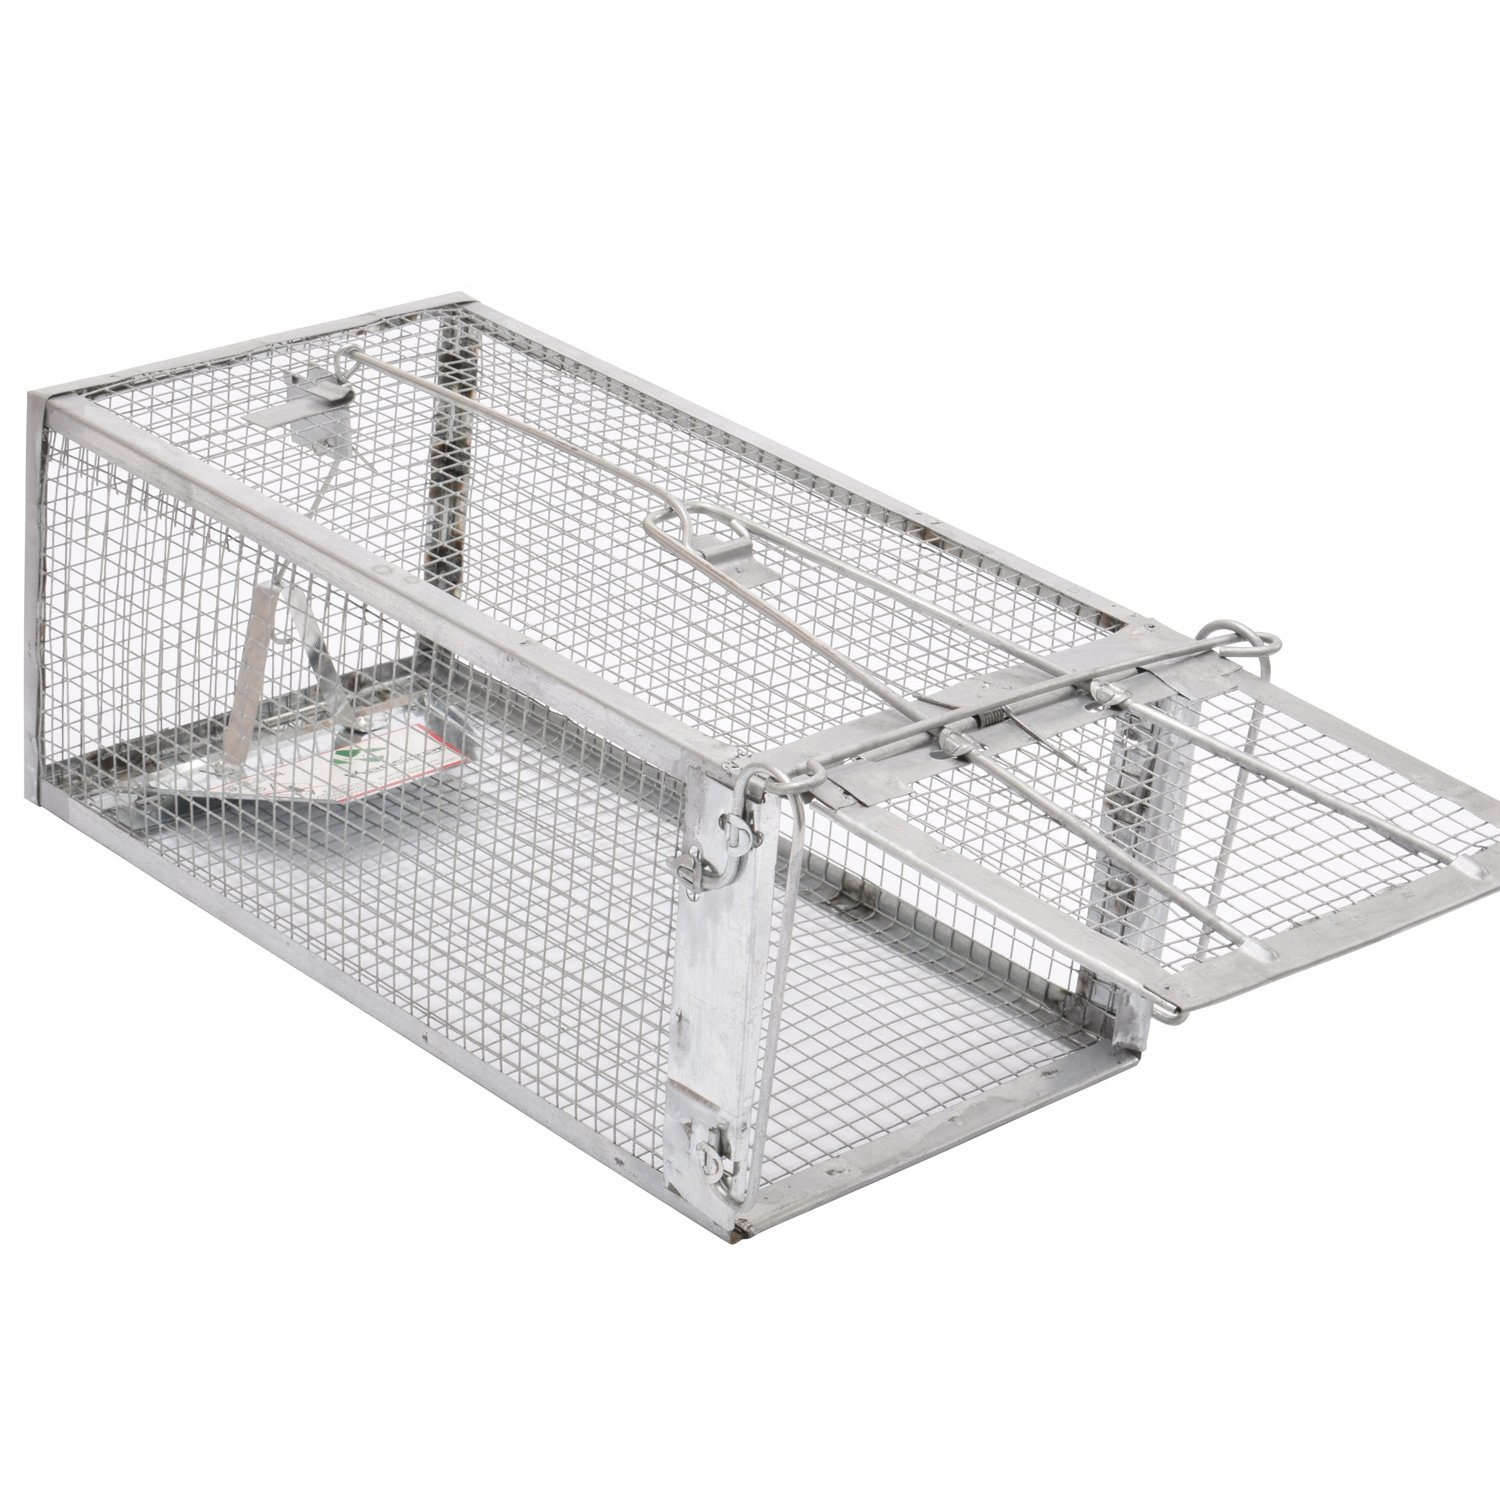 Kensizer Small Animasl Humane Live Cage Rat Mouse Trap